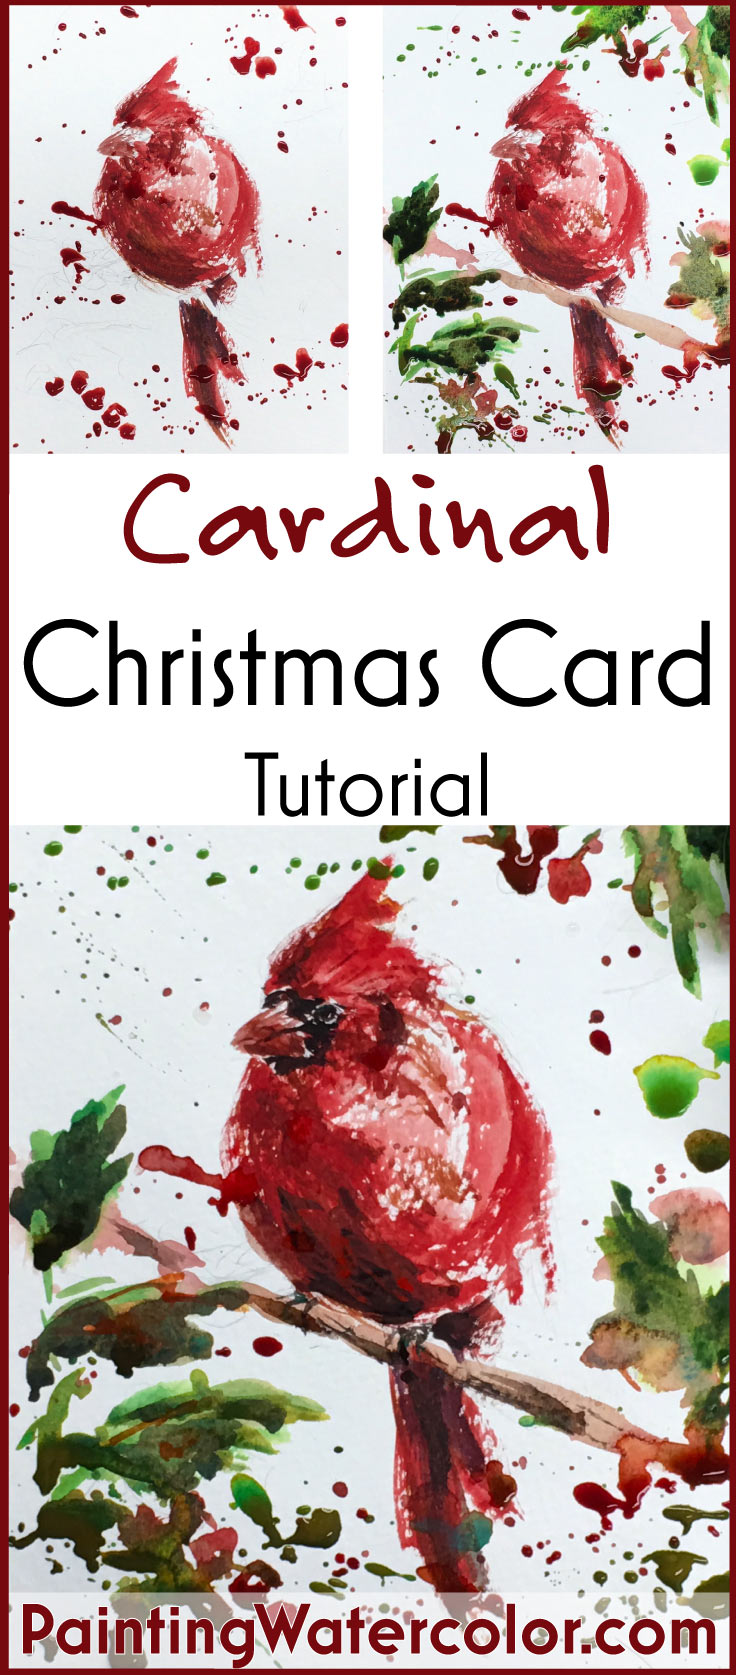 Paint beautiful Christmas cards for your family and friends! I show you step by step how to paint a beautiful cardinal bird.